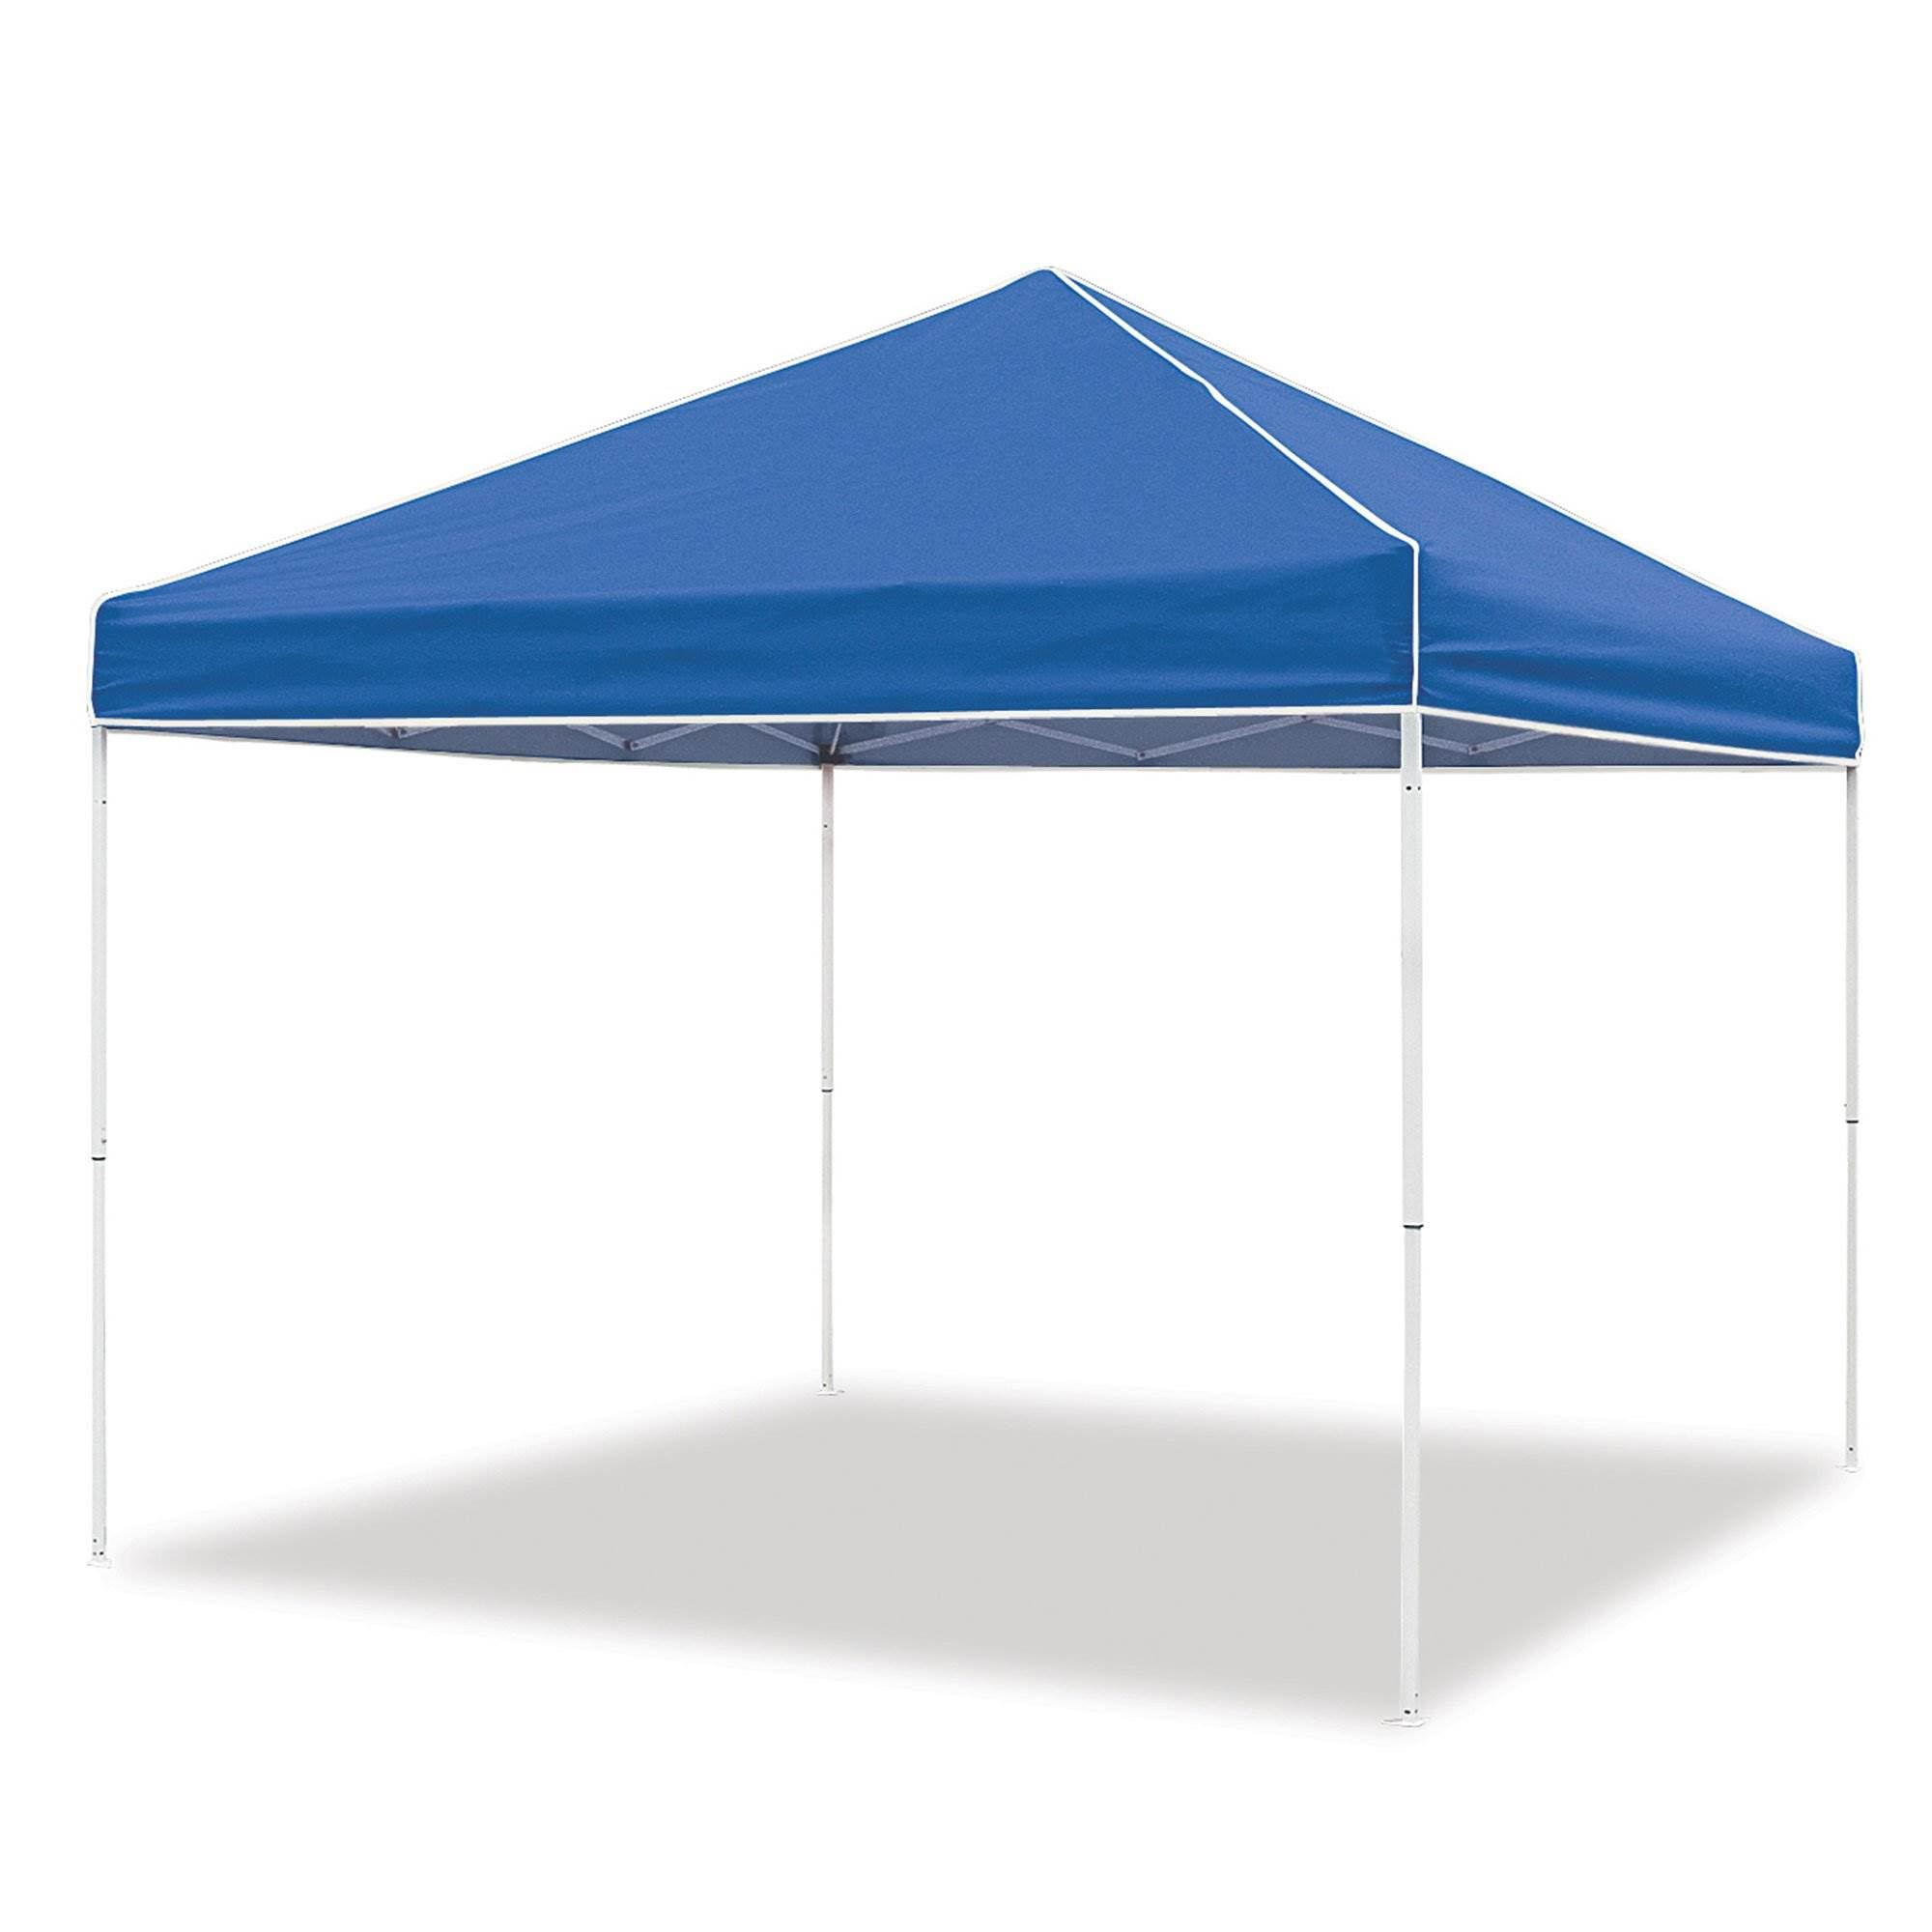 Blue Quik Shade 10/' x 10/' Instant Straight Leg Pop Up Outdoor Canopy Shelter